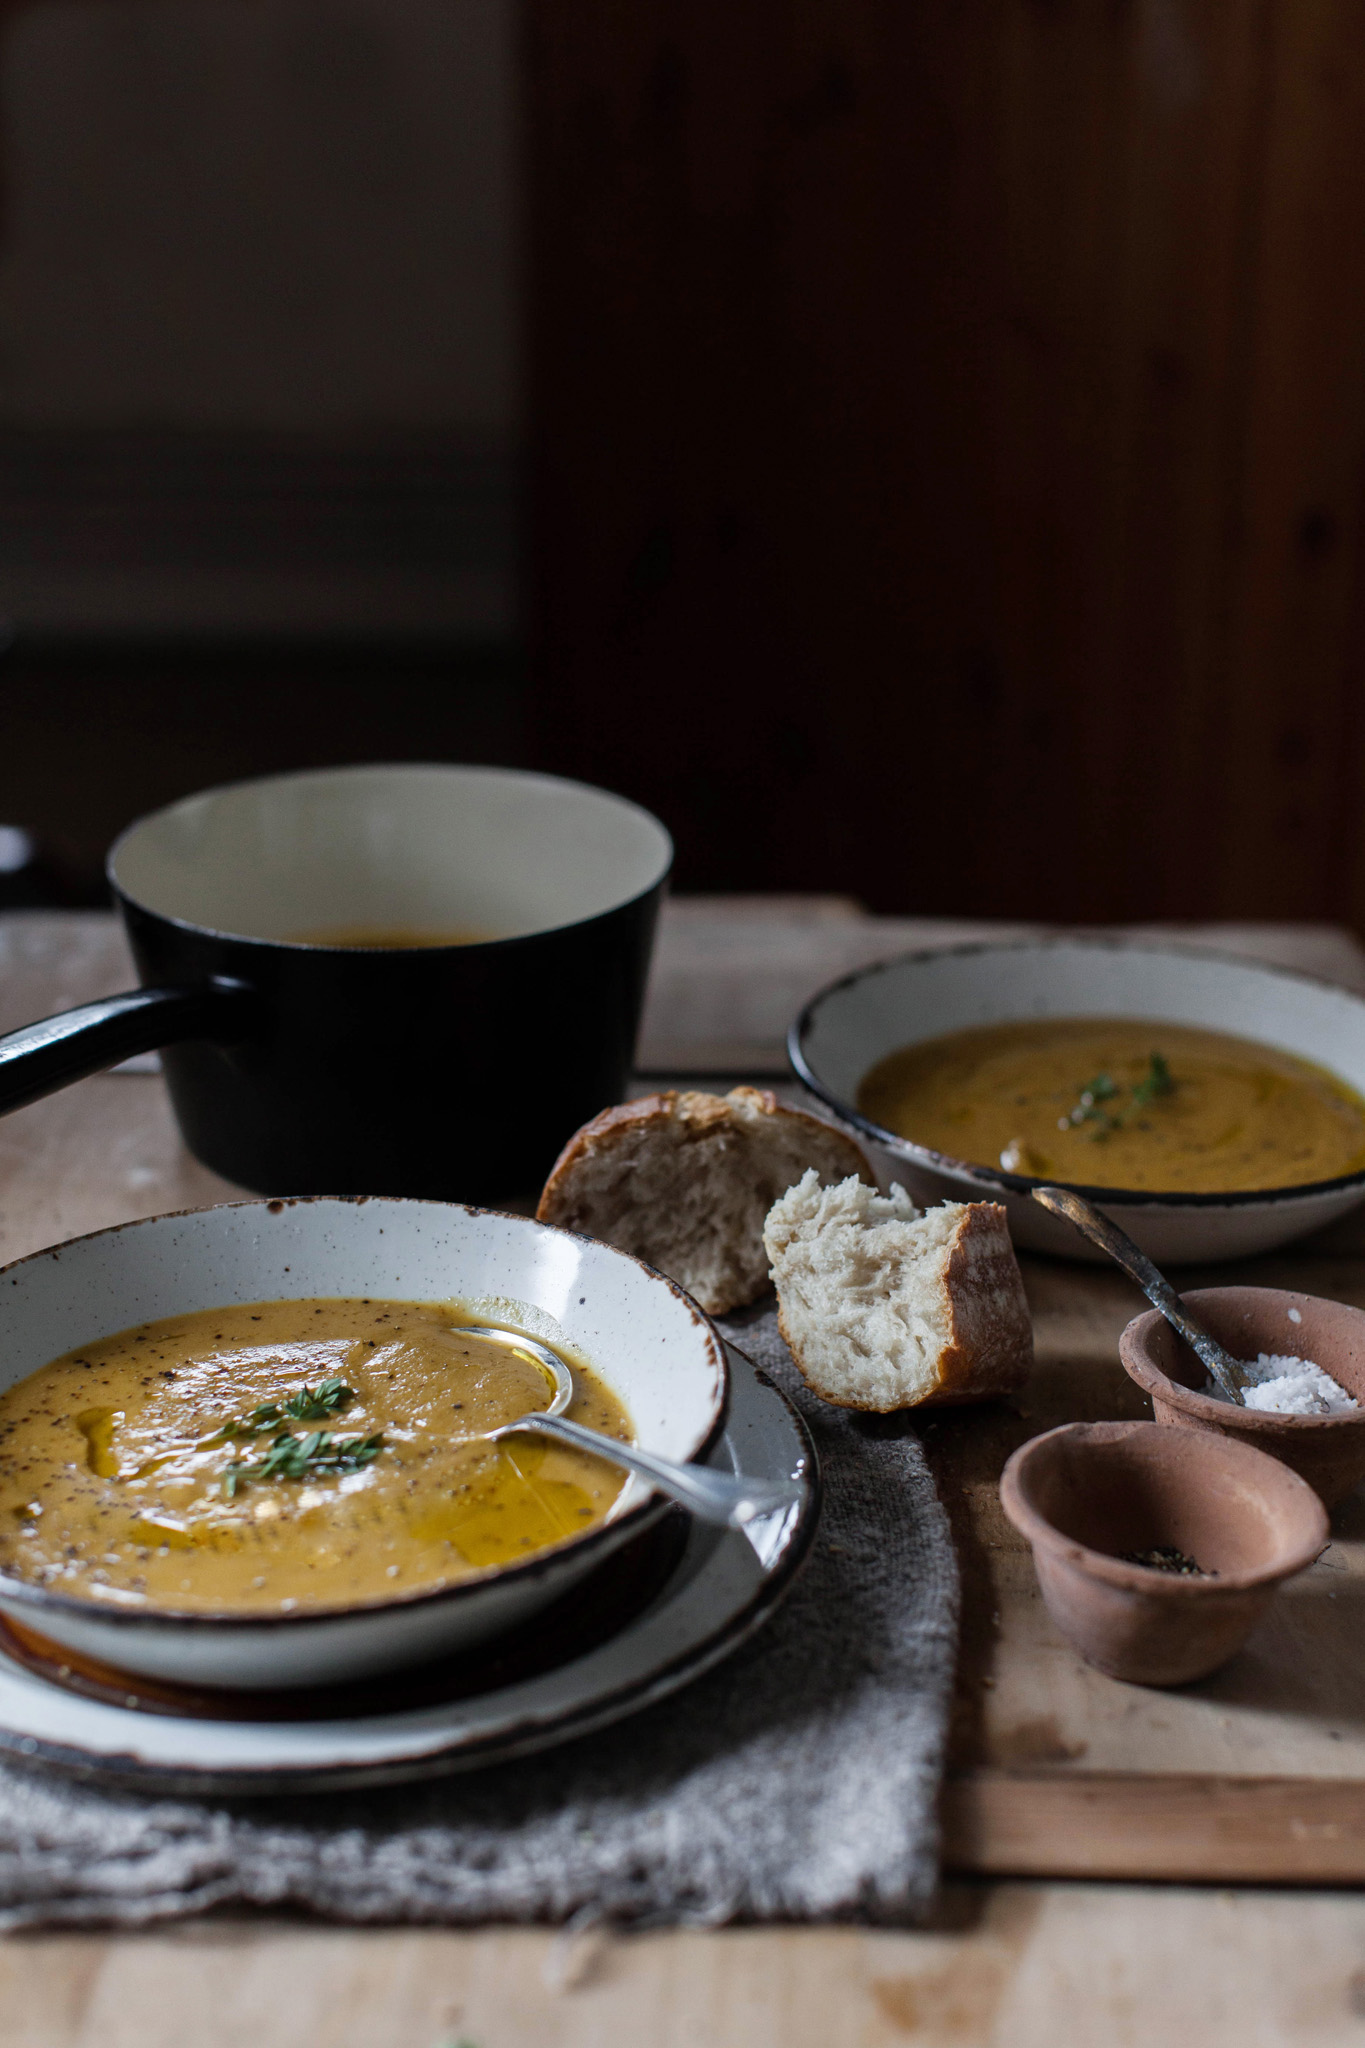 Leftover Sunday chicken roast soup with vegetables. Photography by Sussex food photographer Emma Gutteridge